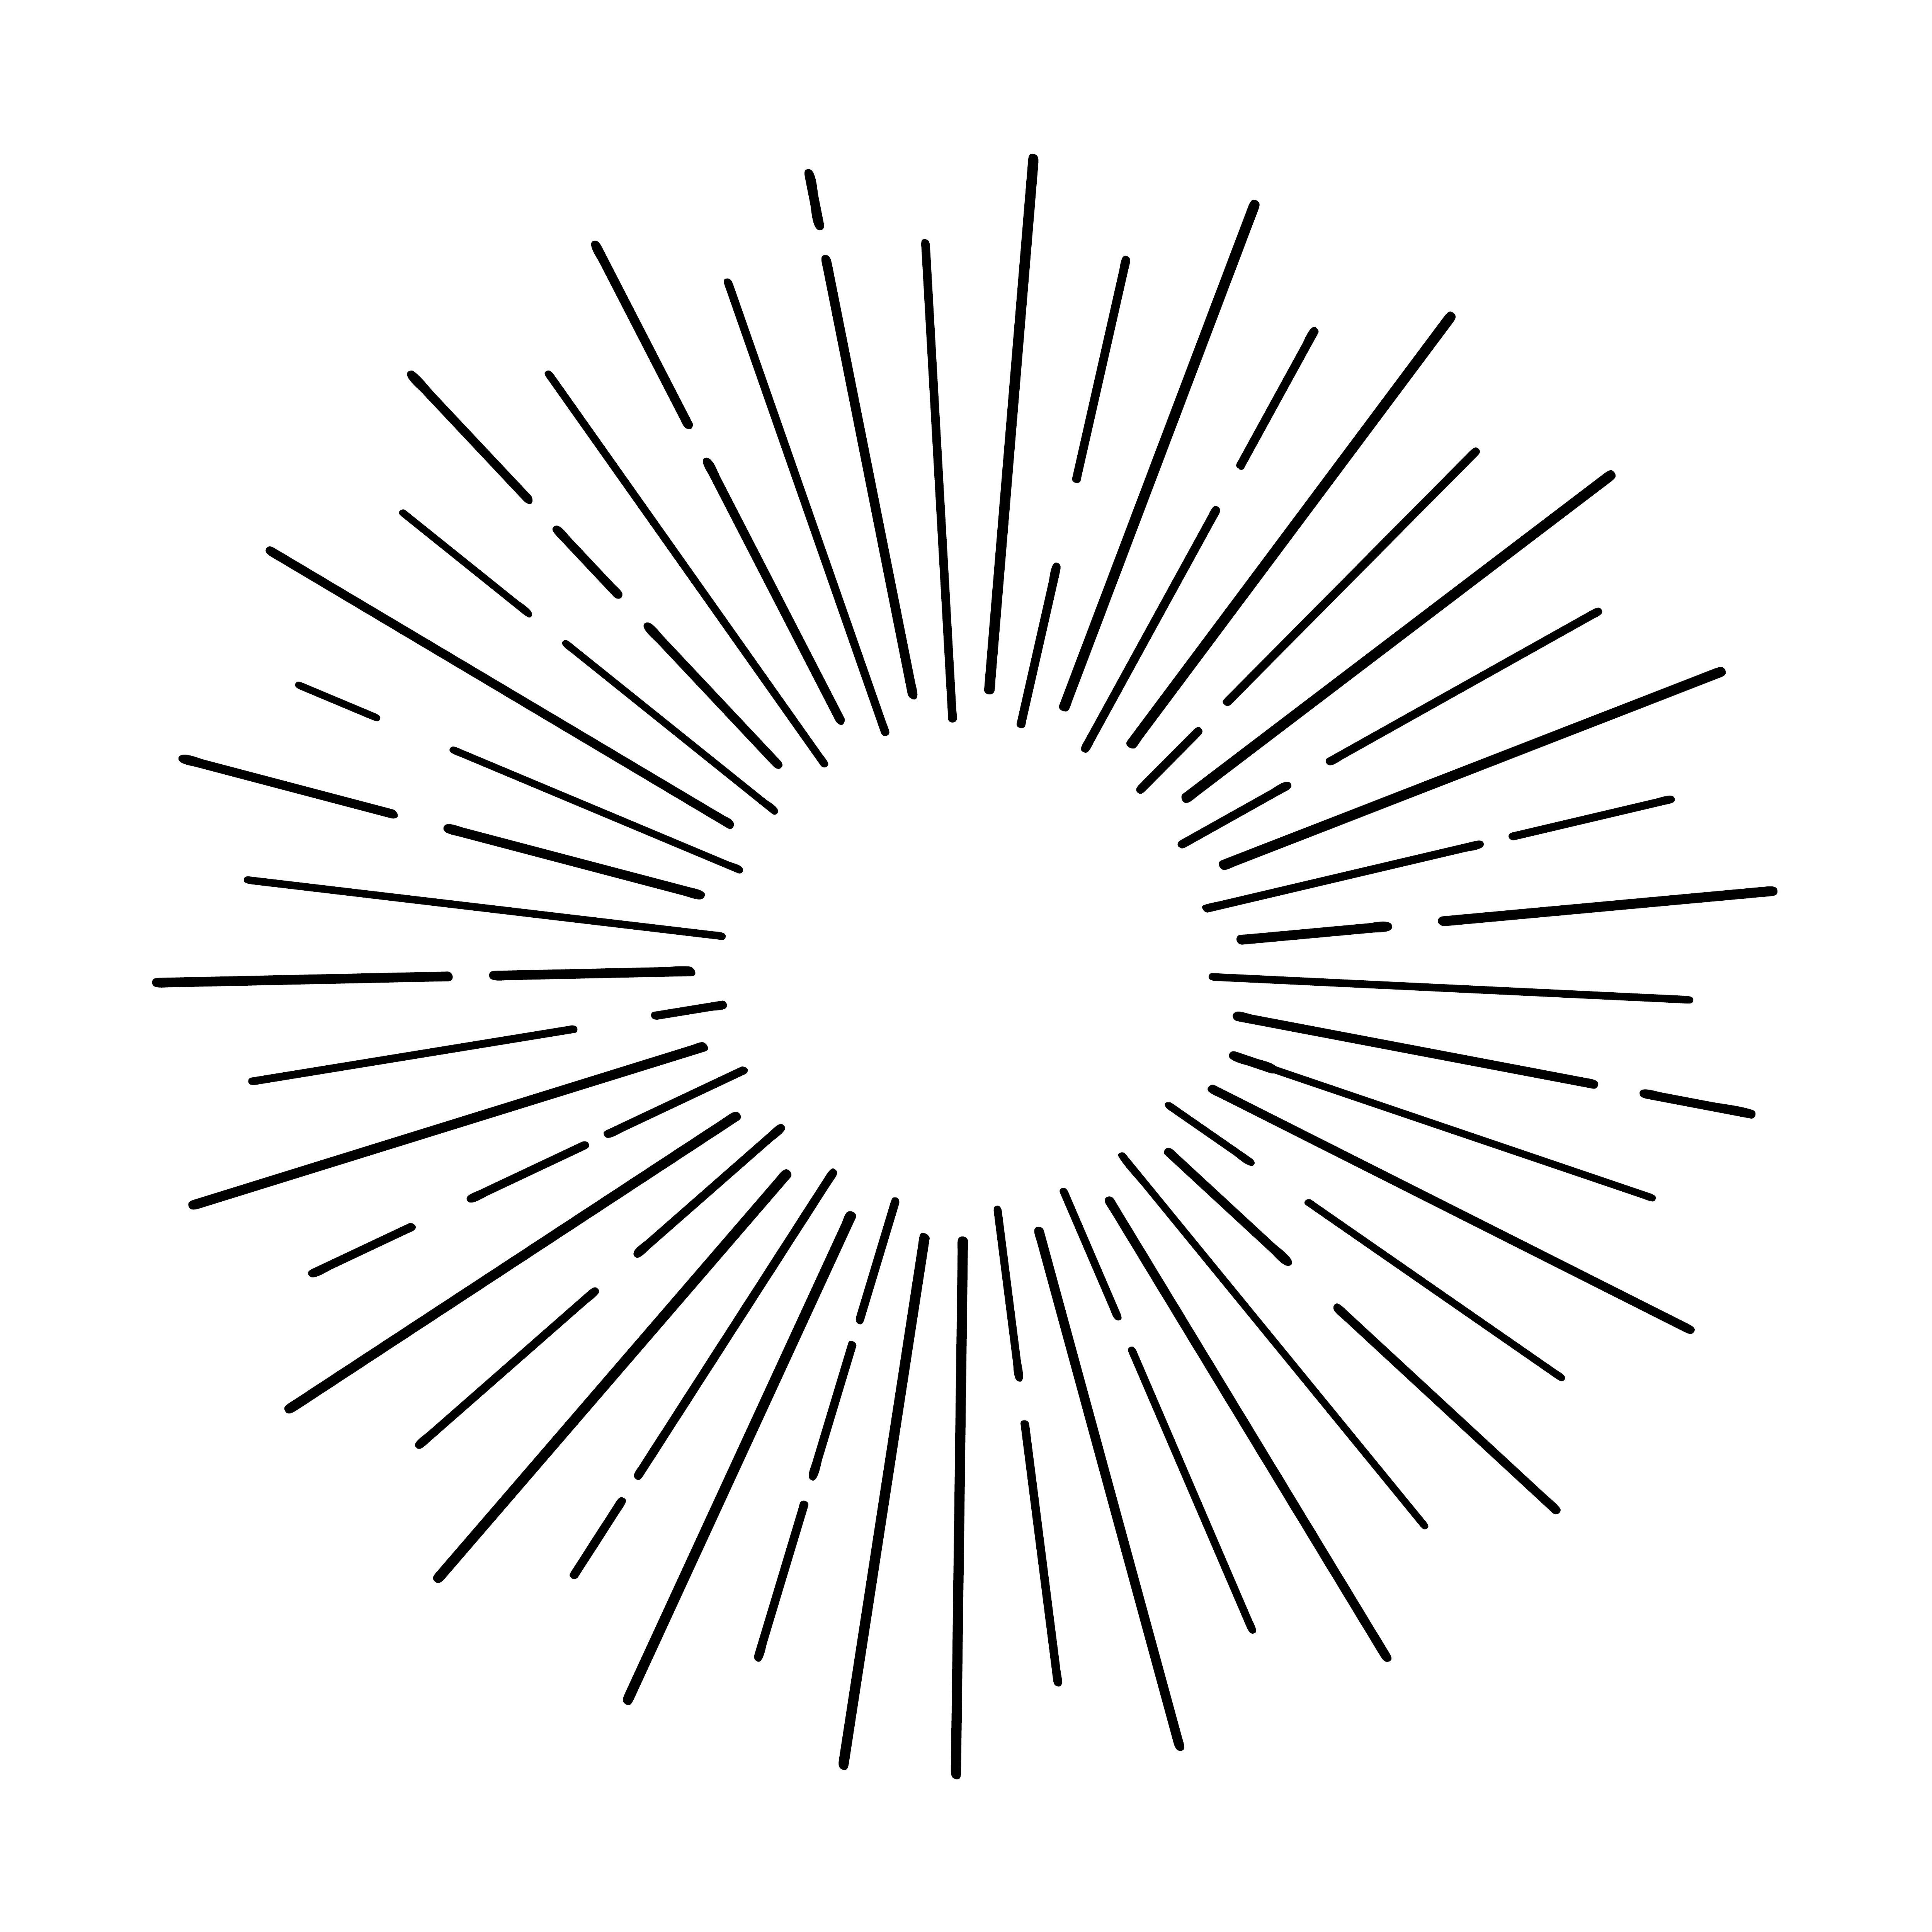 32+ Sun rays clipart black and white ideas in 2021